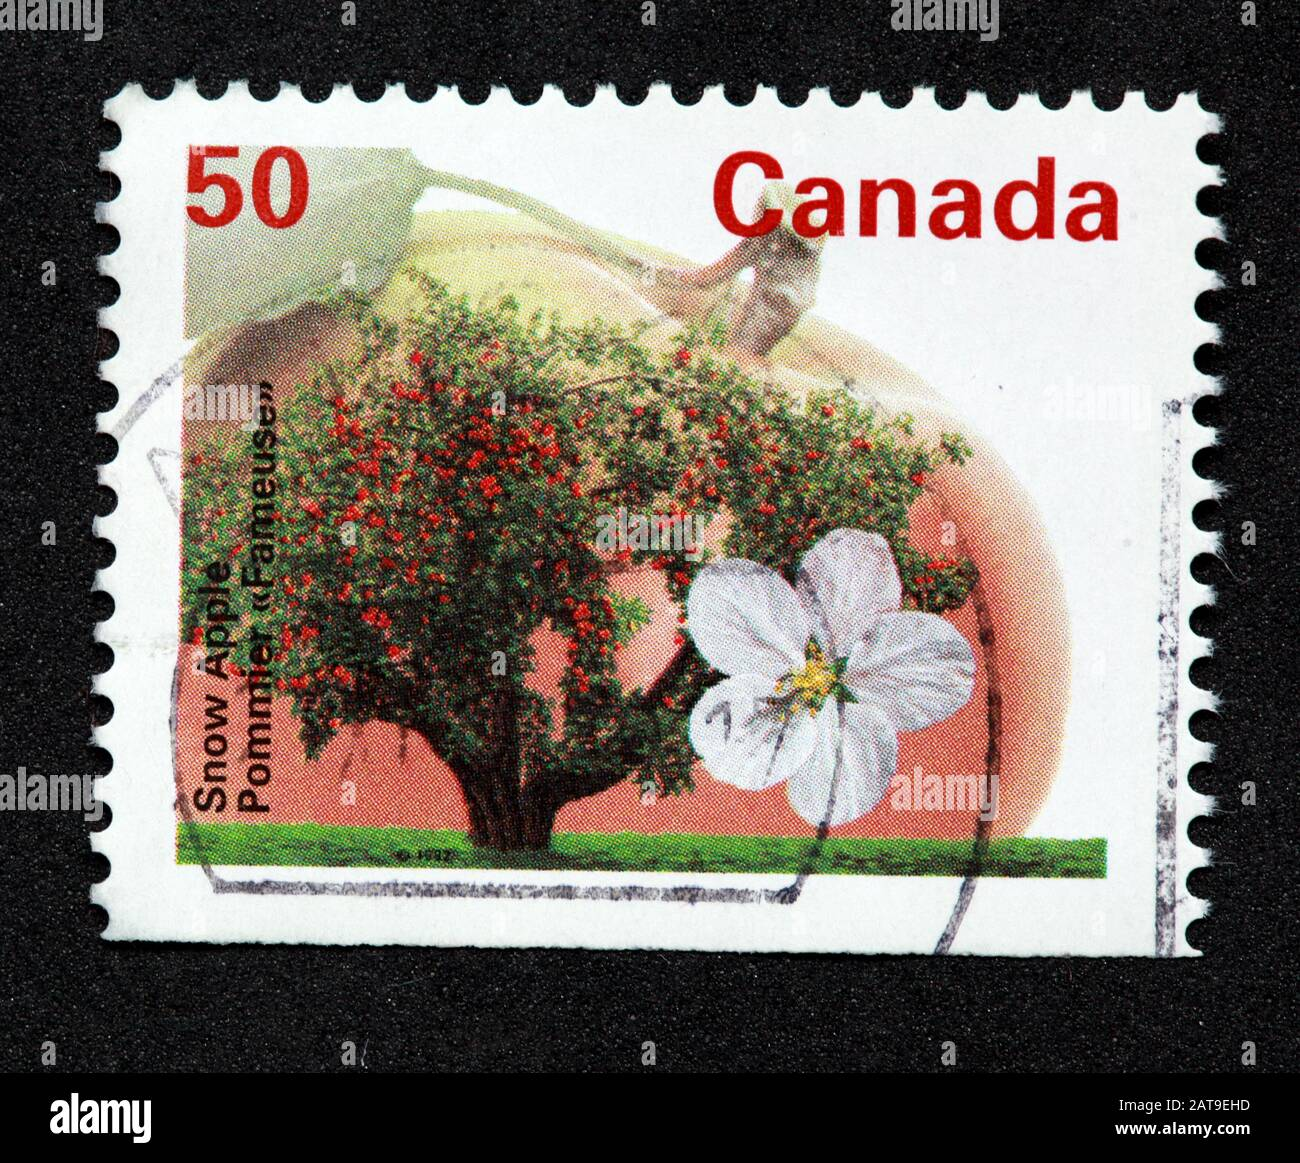 Canadian Stamp, Canada Stamp, Canada Post,used stamp, Canada 50c,50cent,, Snow Apple,flower,tree Stock Photo